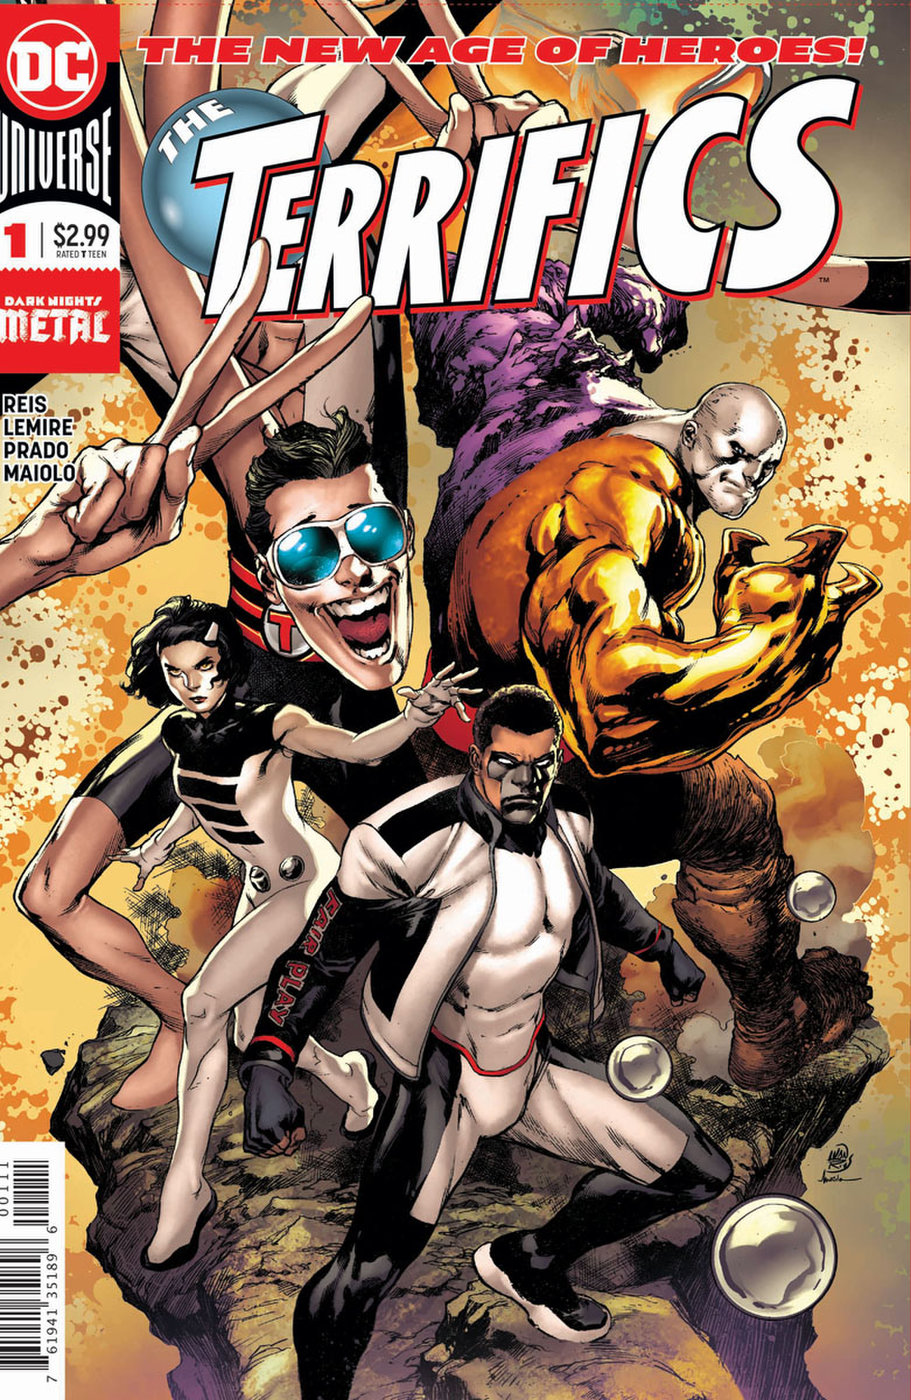 The Terrifics by Ivan Reis